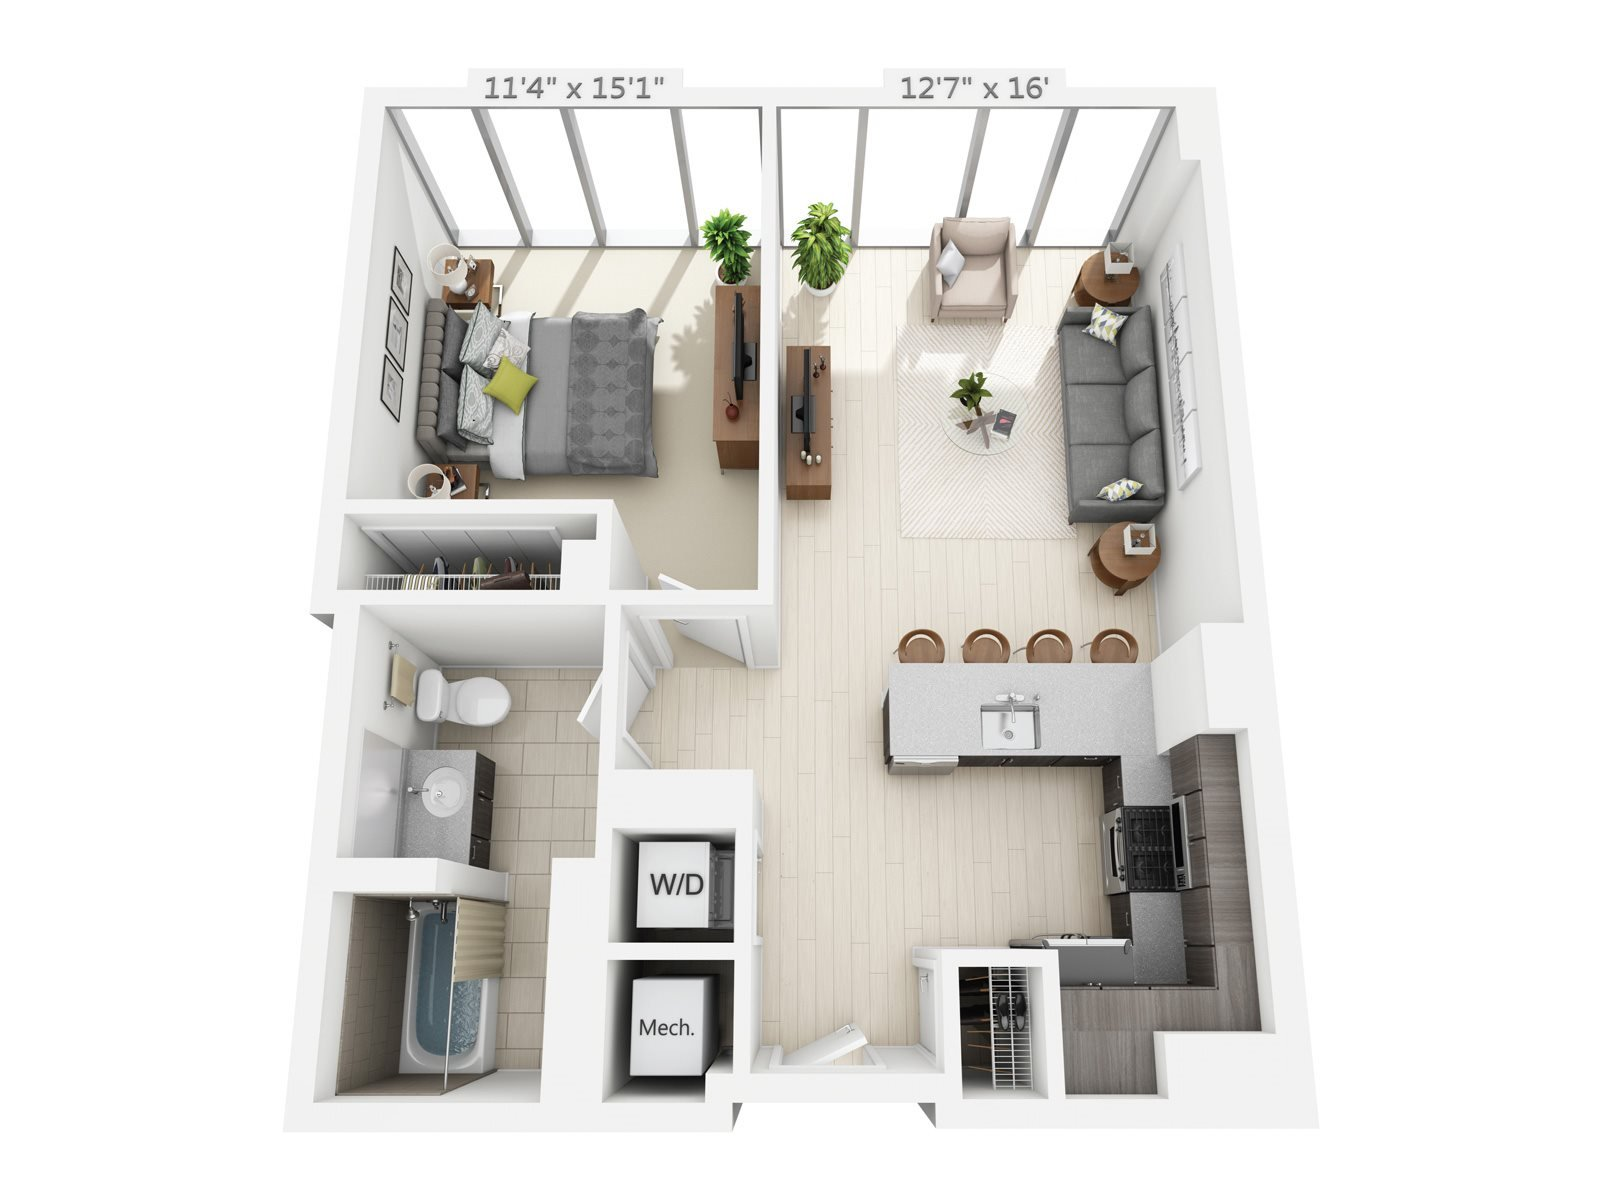 1 BEDROOM/1 BATH B2 Floor Plan 3